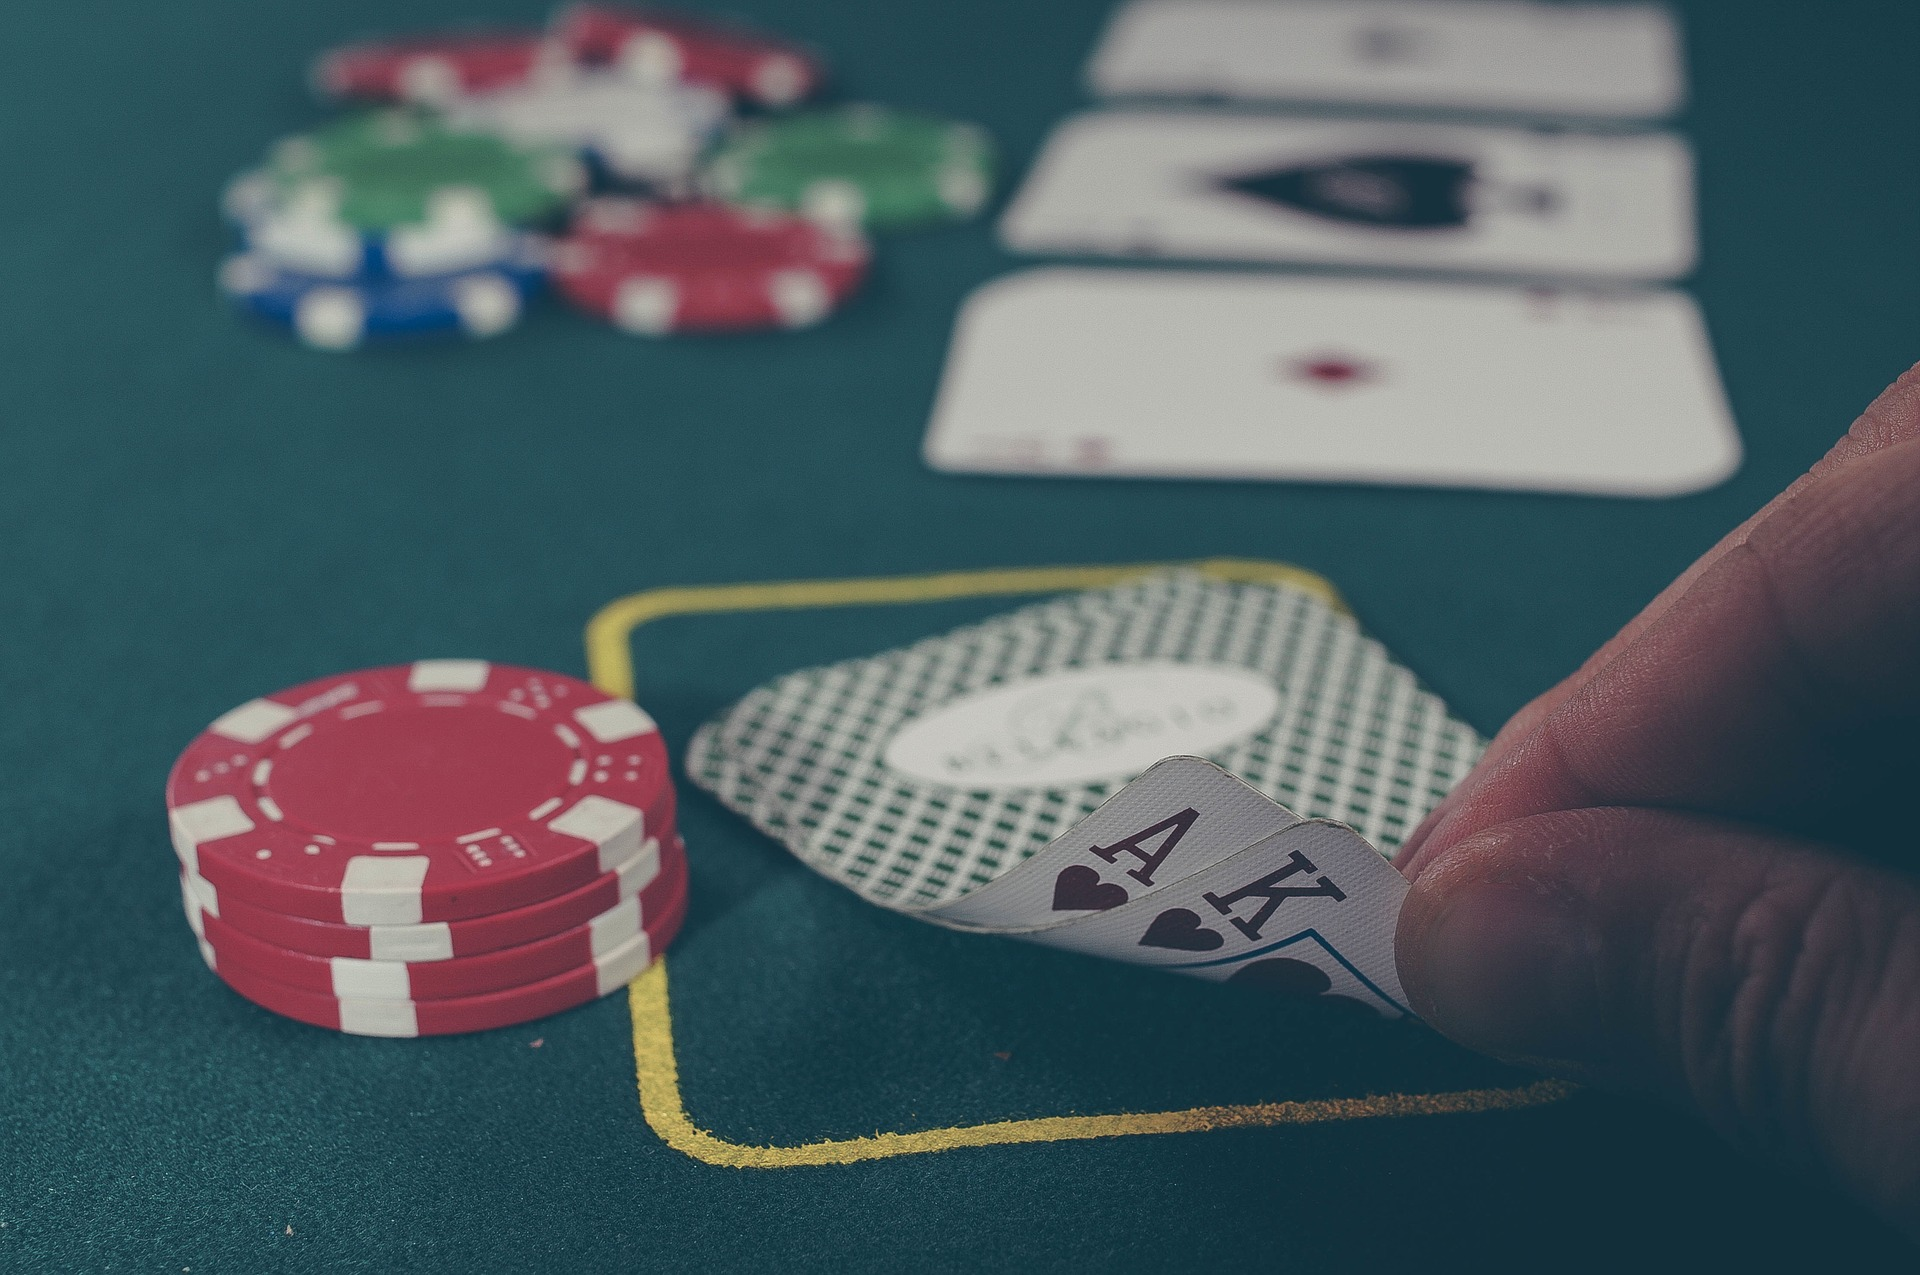 arizona gambling laws - sports, casions, poker, racing, online